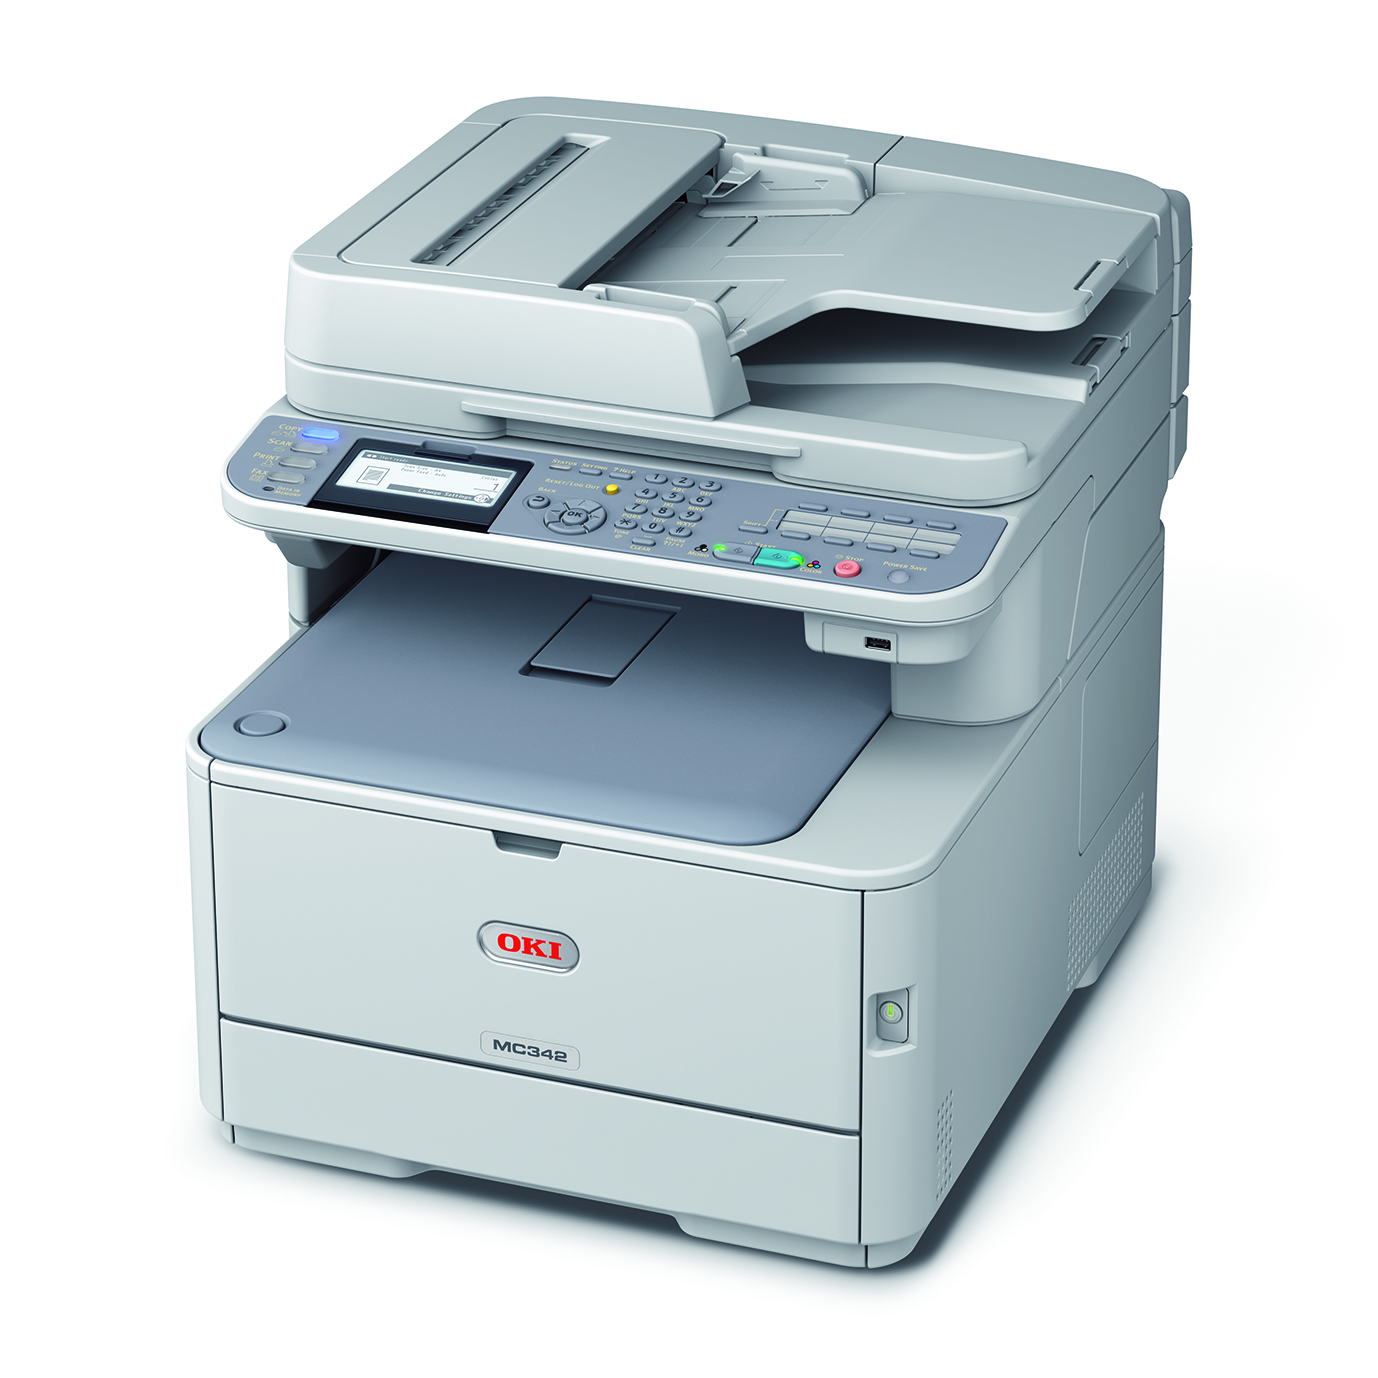 OKI-MC332dn-Multi-Function-Duplex-Network-A4-Colour-Laser-Printer